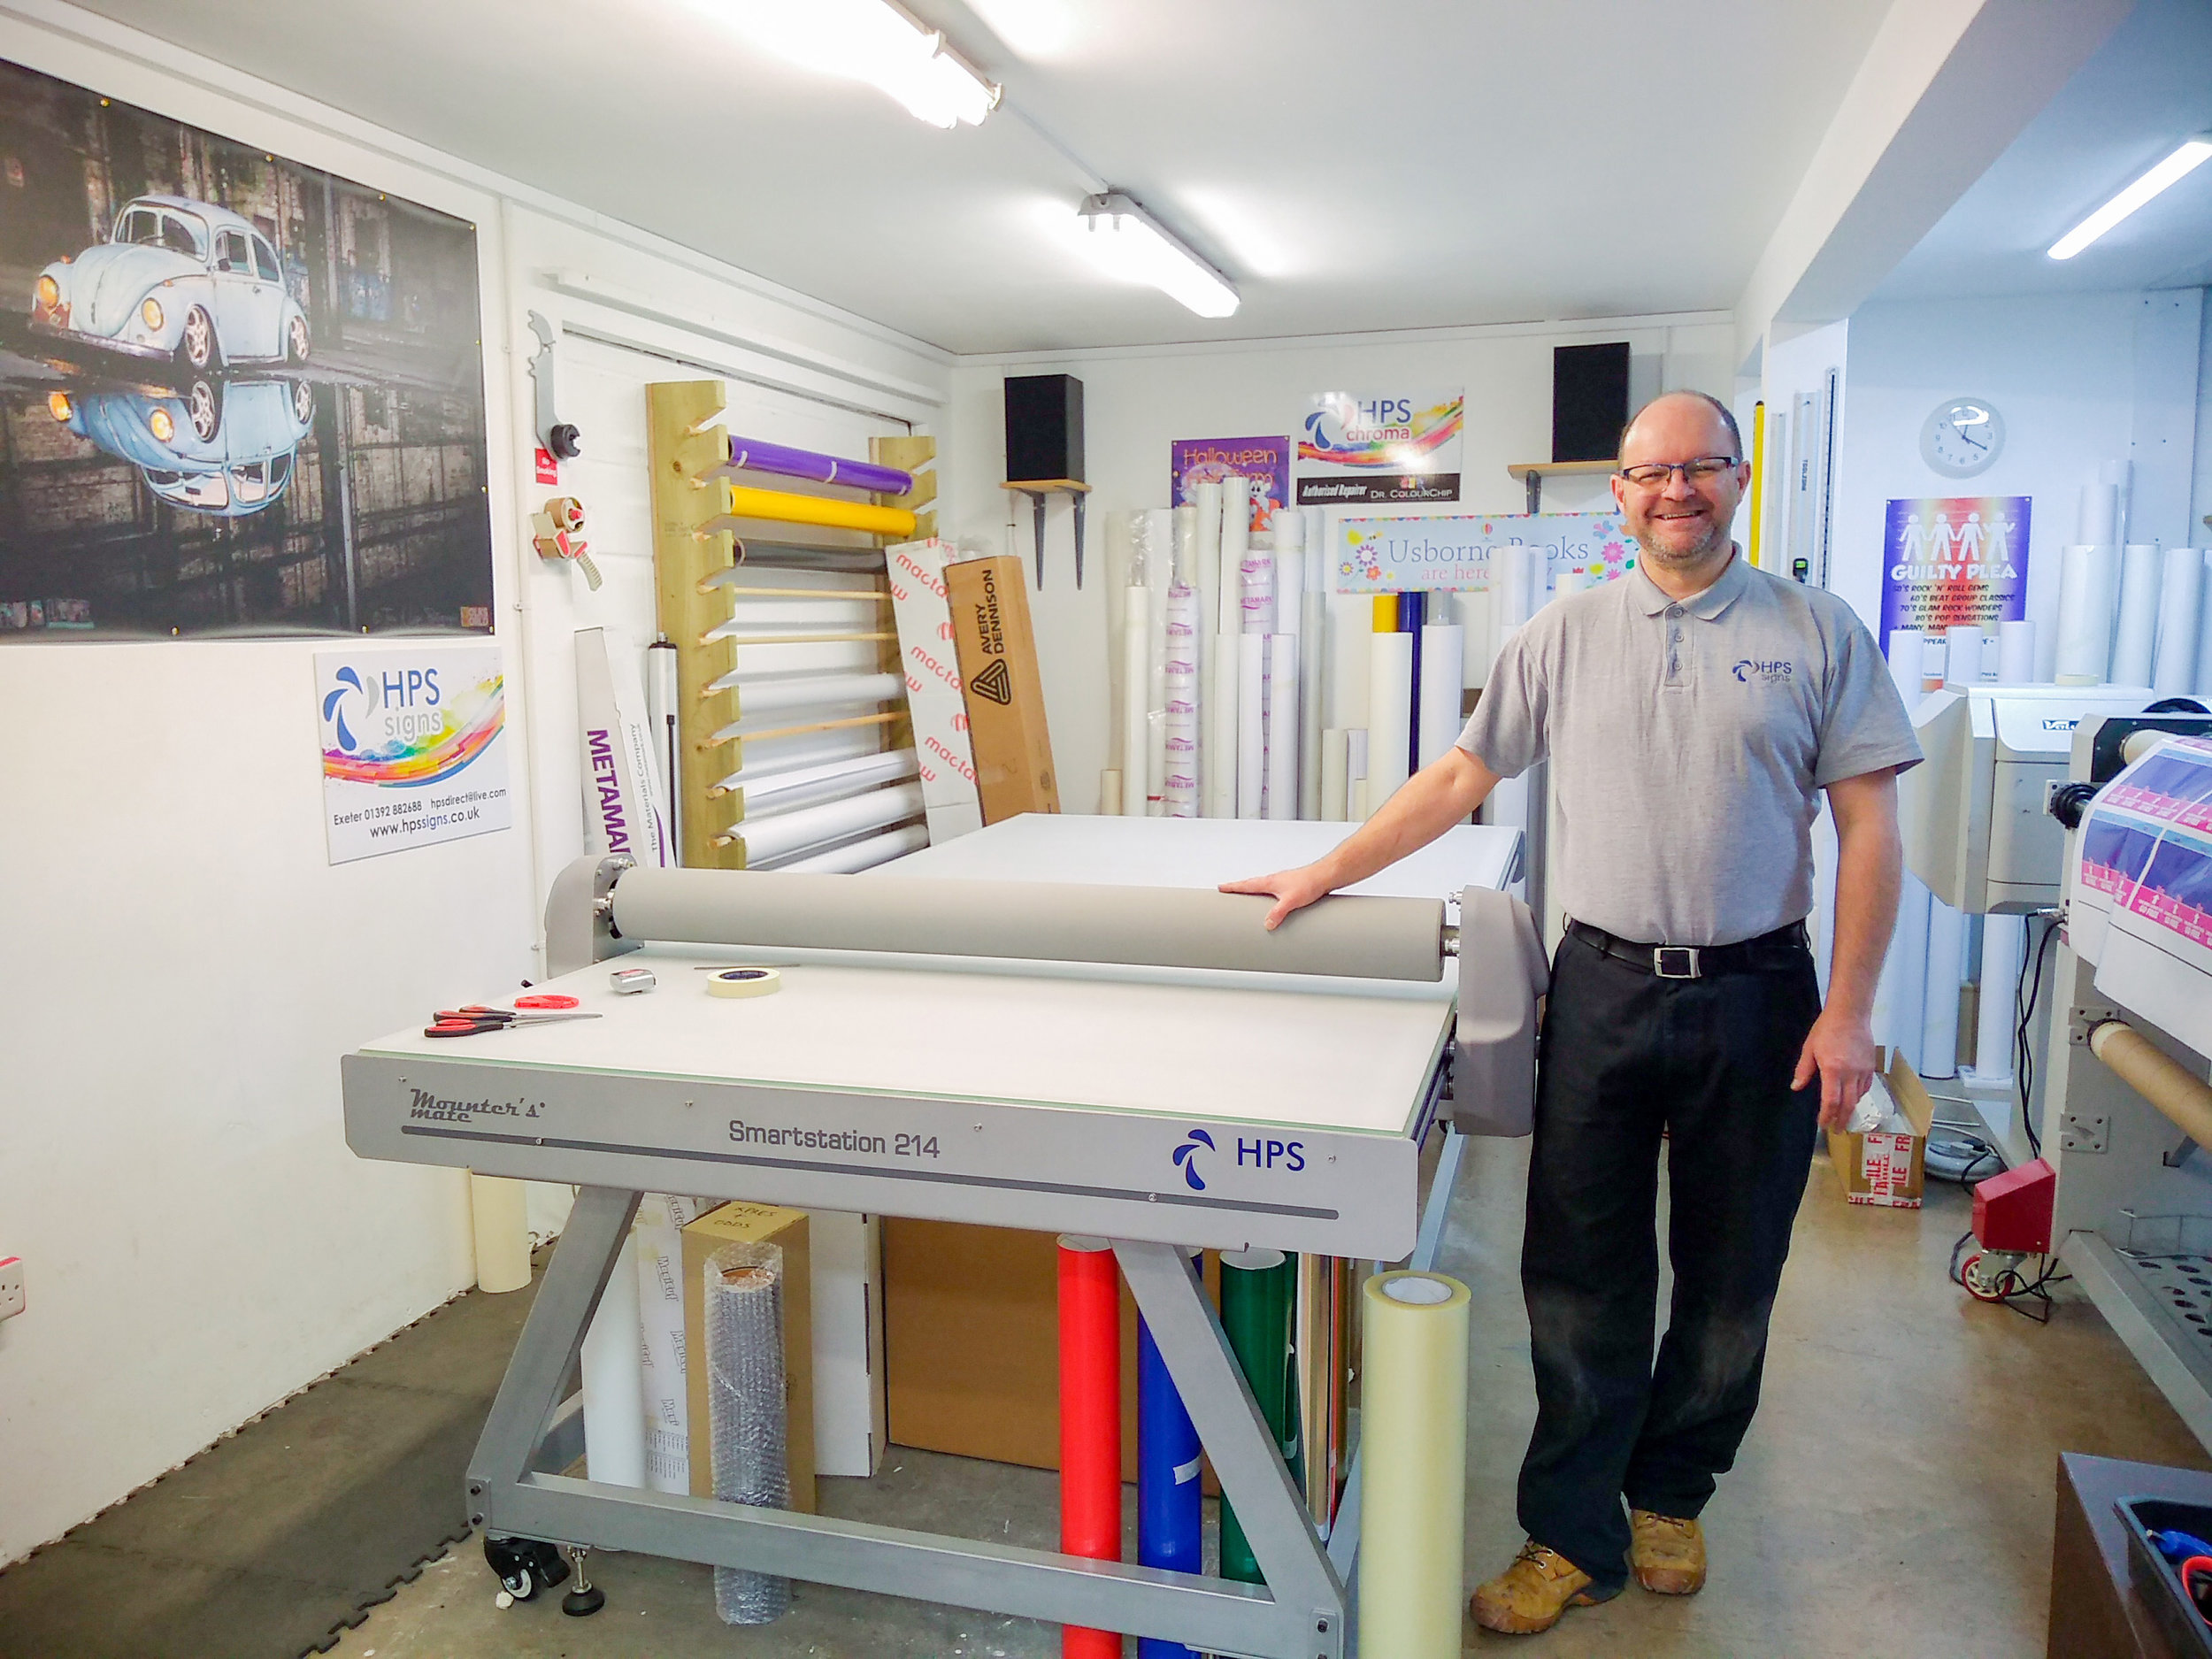 """""""It's allowed me to take on jobs I probably would have had to turn away before."""" Mark Andrews, owner of HPS Signs in Exeter, is enthusiastic about his Mounter's Mate Smartstation flatbed mounting table. """"It just allows you to say 'yes I can do that,' rather than not being sure, or it taking twice as long!"""" - Mark, HPS Signs"""